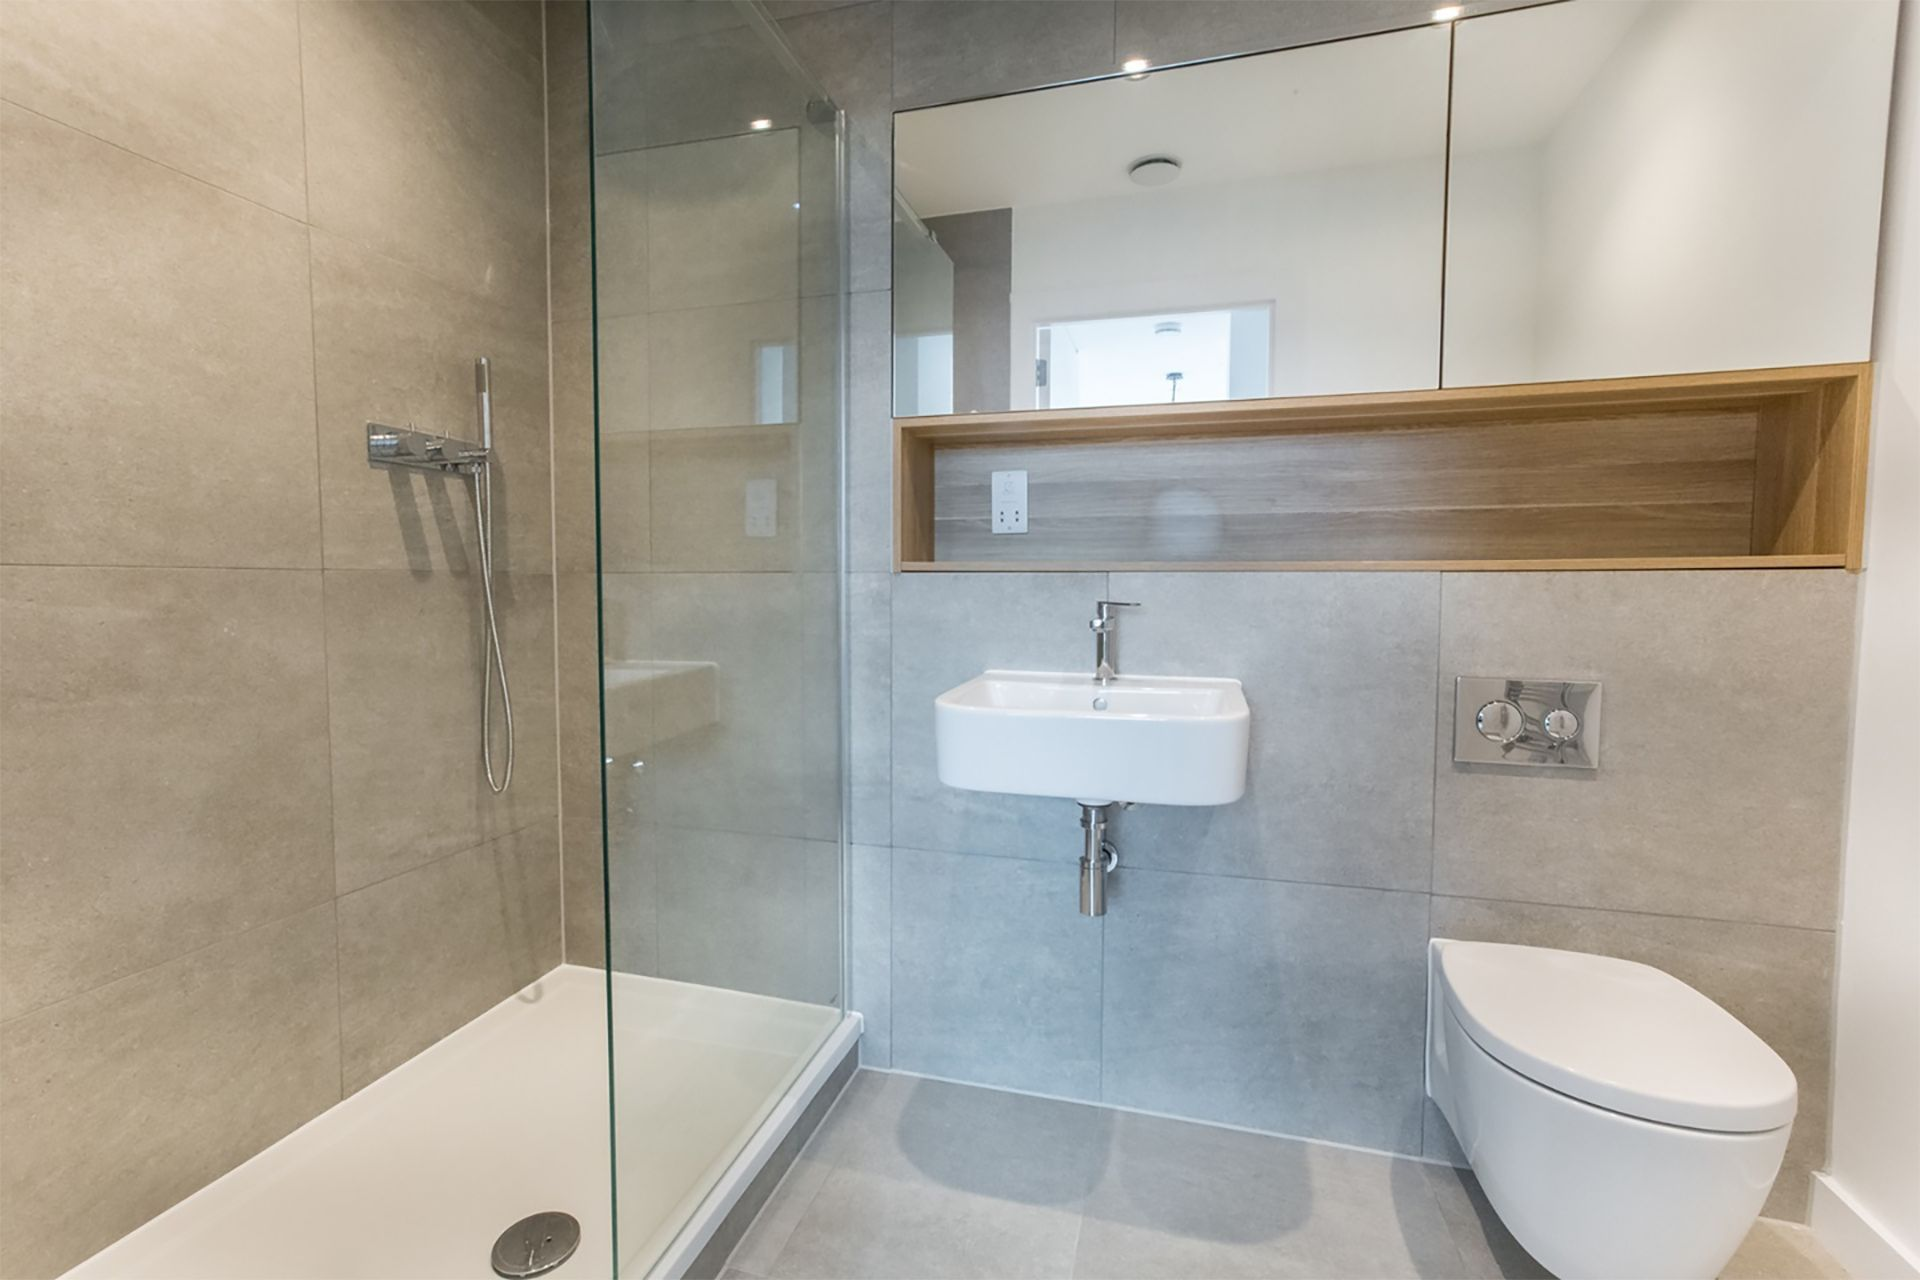 1 Bedroom apartment to rent in London HIL-HH-1100